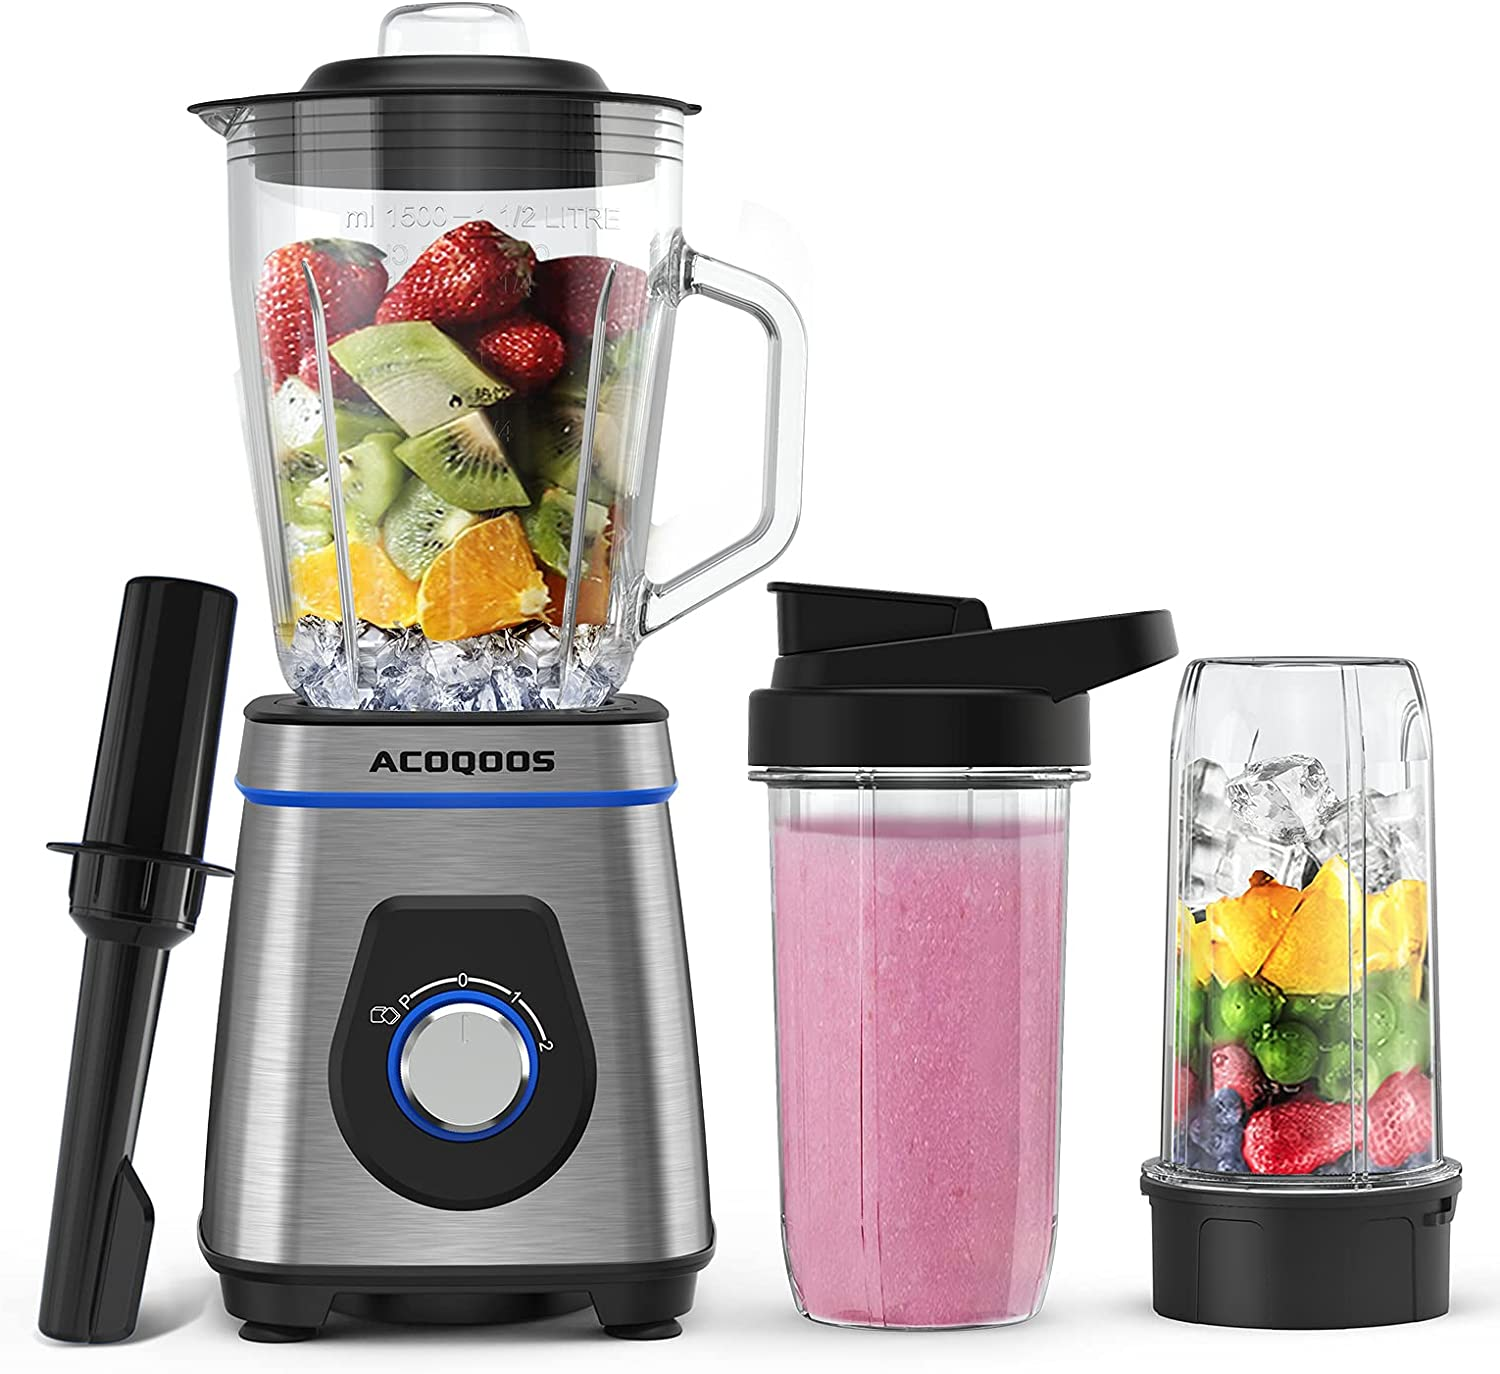 Smoothie Blender for Kitchen, Blender for Shakes and Smoothies, 750W Licuadora with 50 Oz Glass Jar, 2 Travel Bottles, BPA Free by ACOQOOS